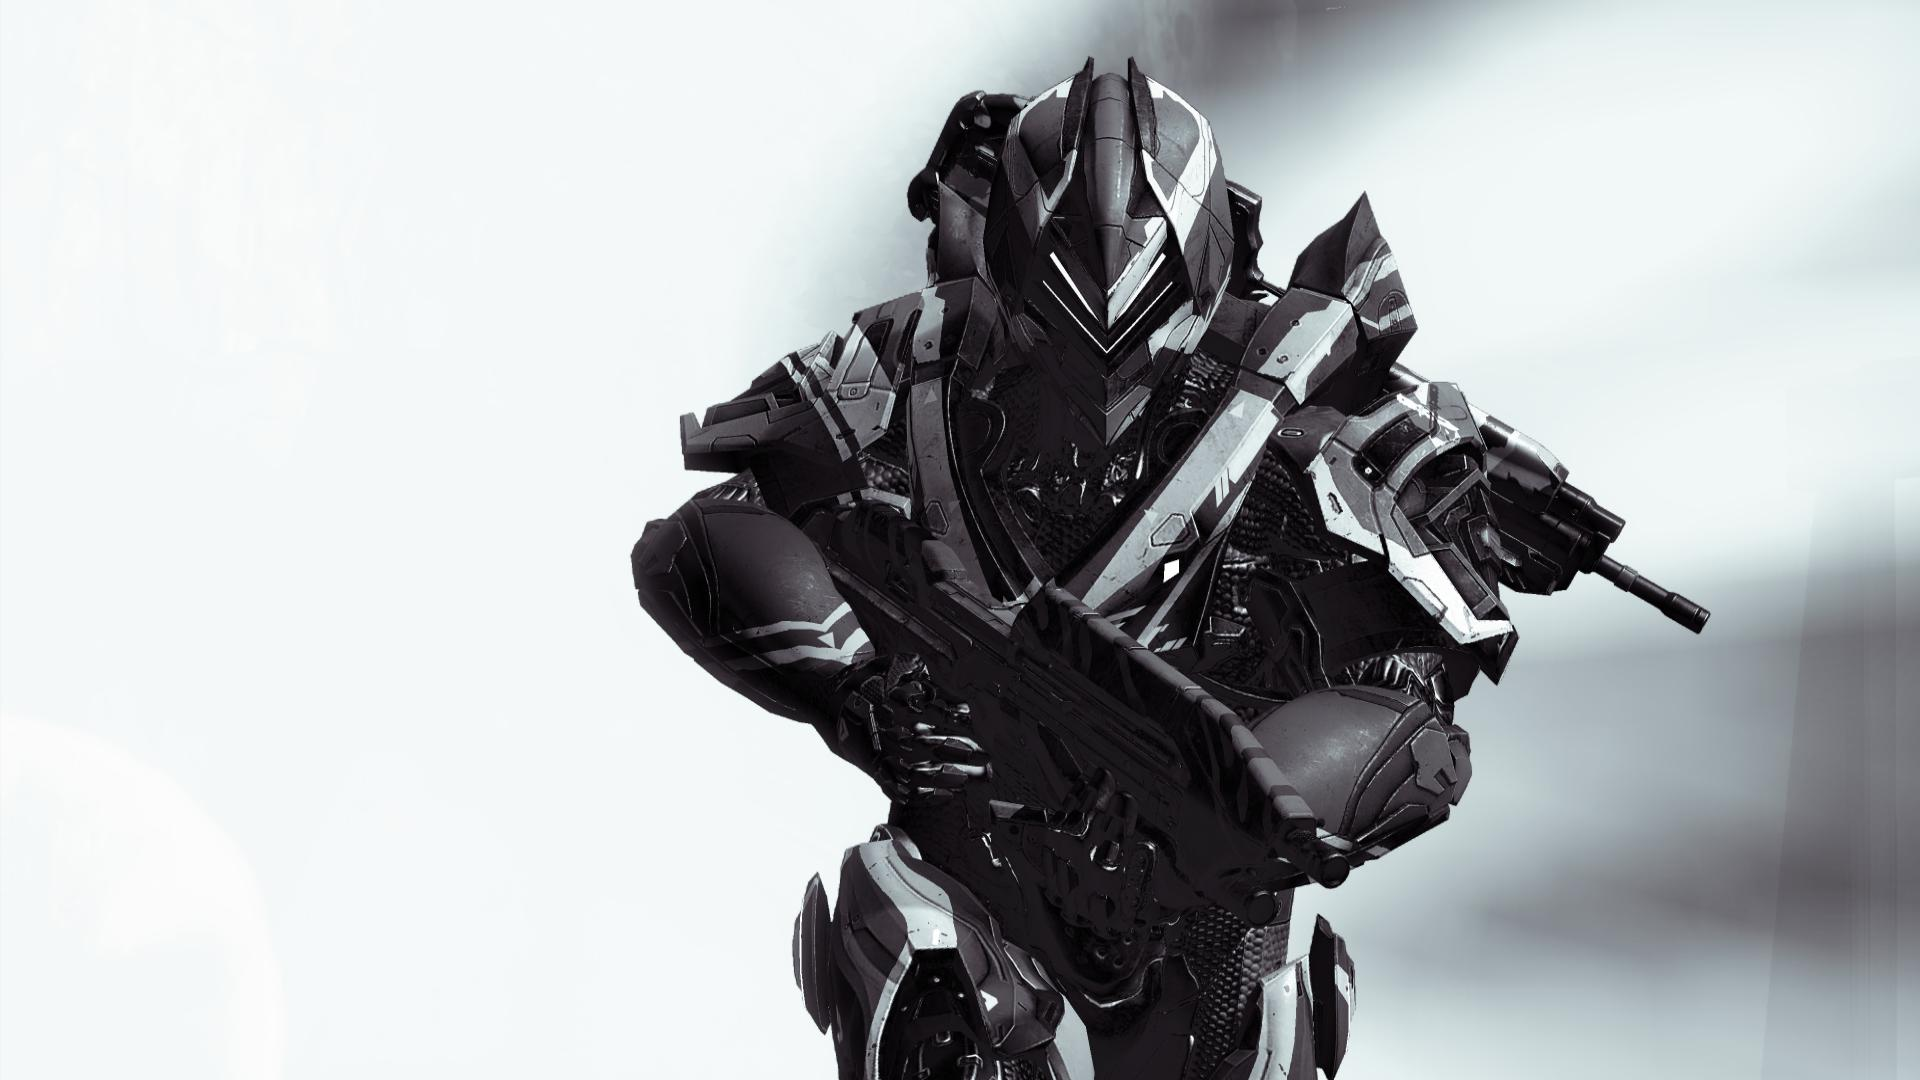 Awesome Halo 4 Wallpaper 741261 1920x1080px 1920x1080